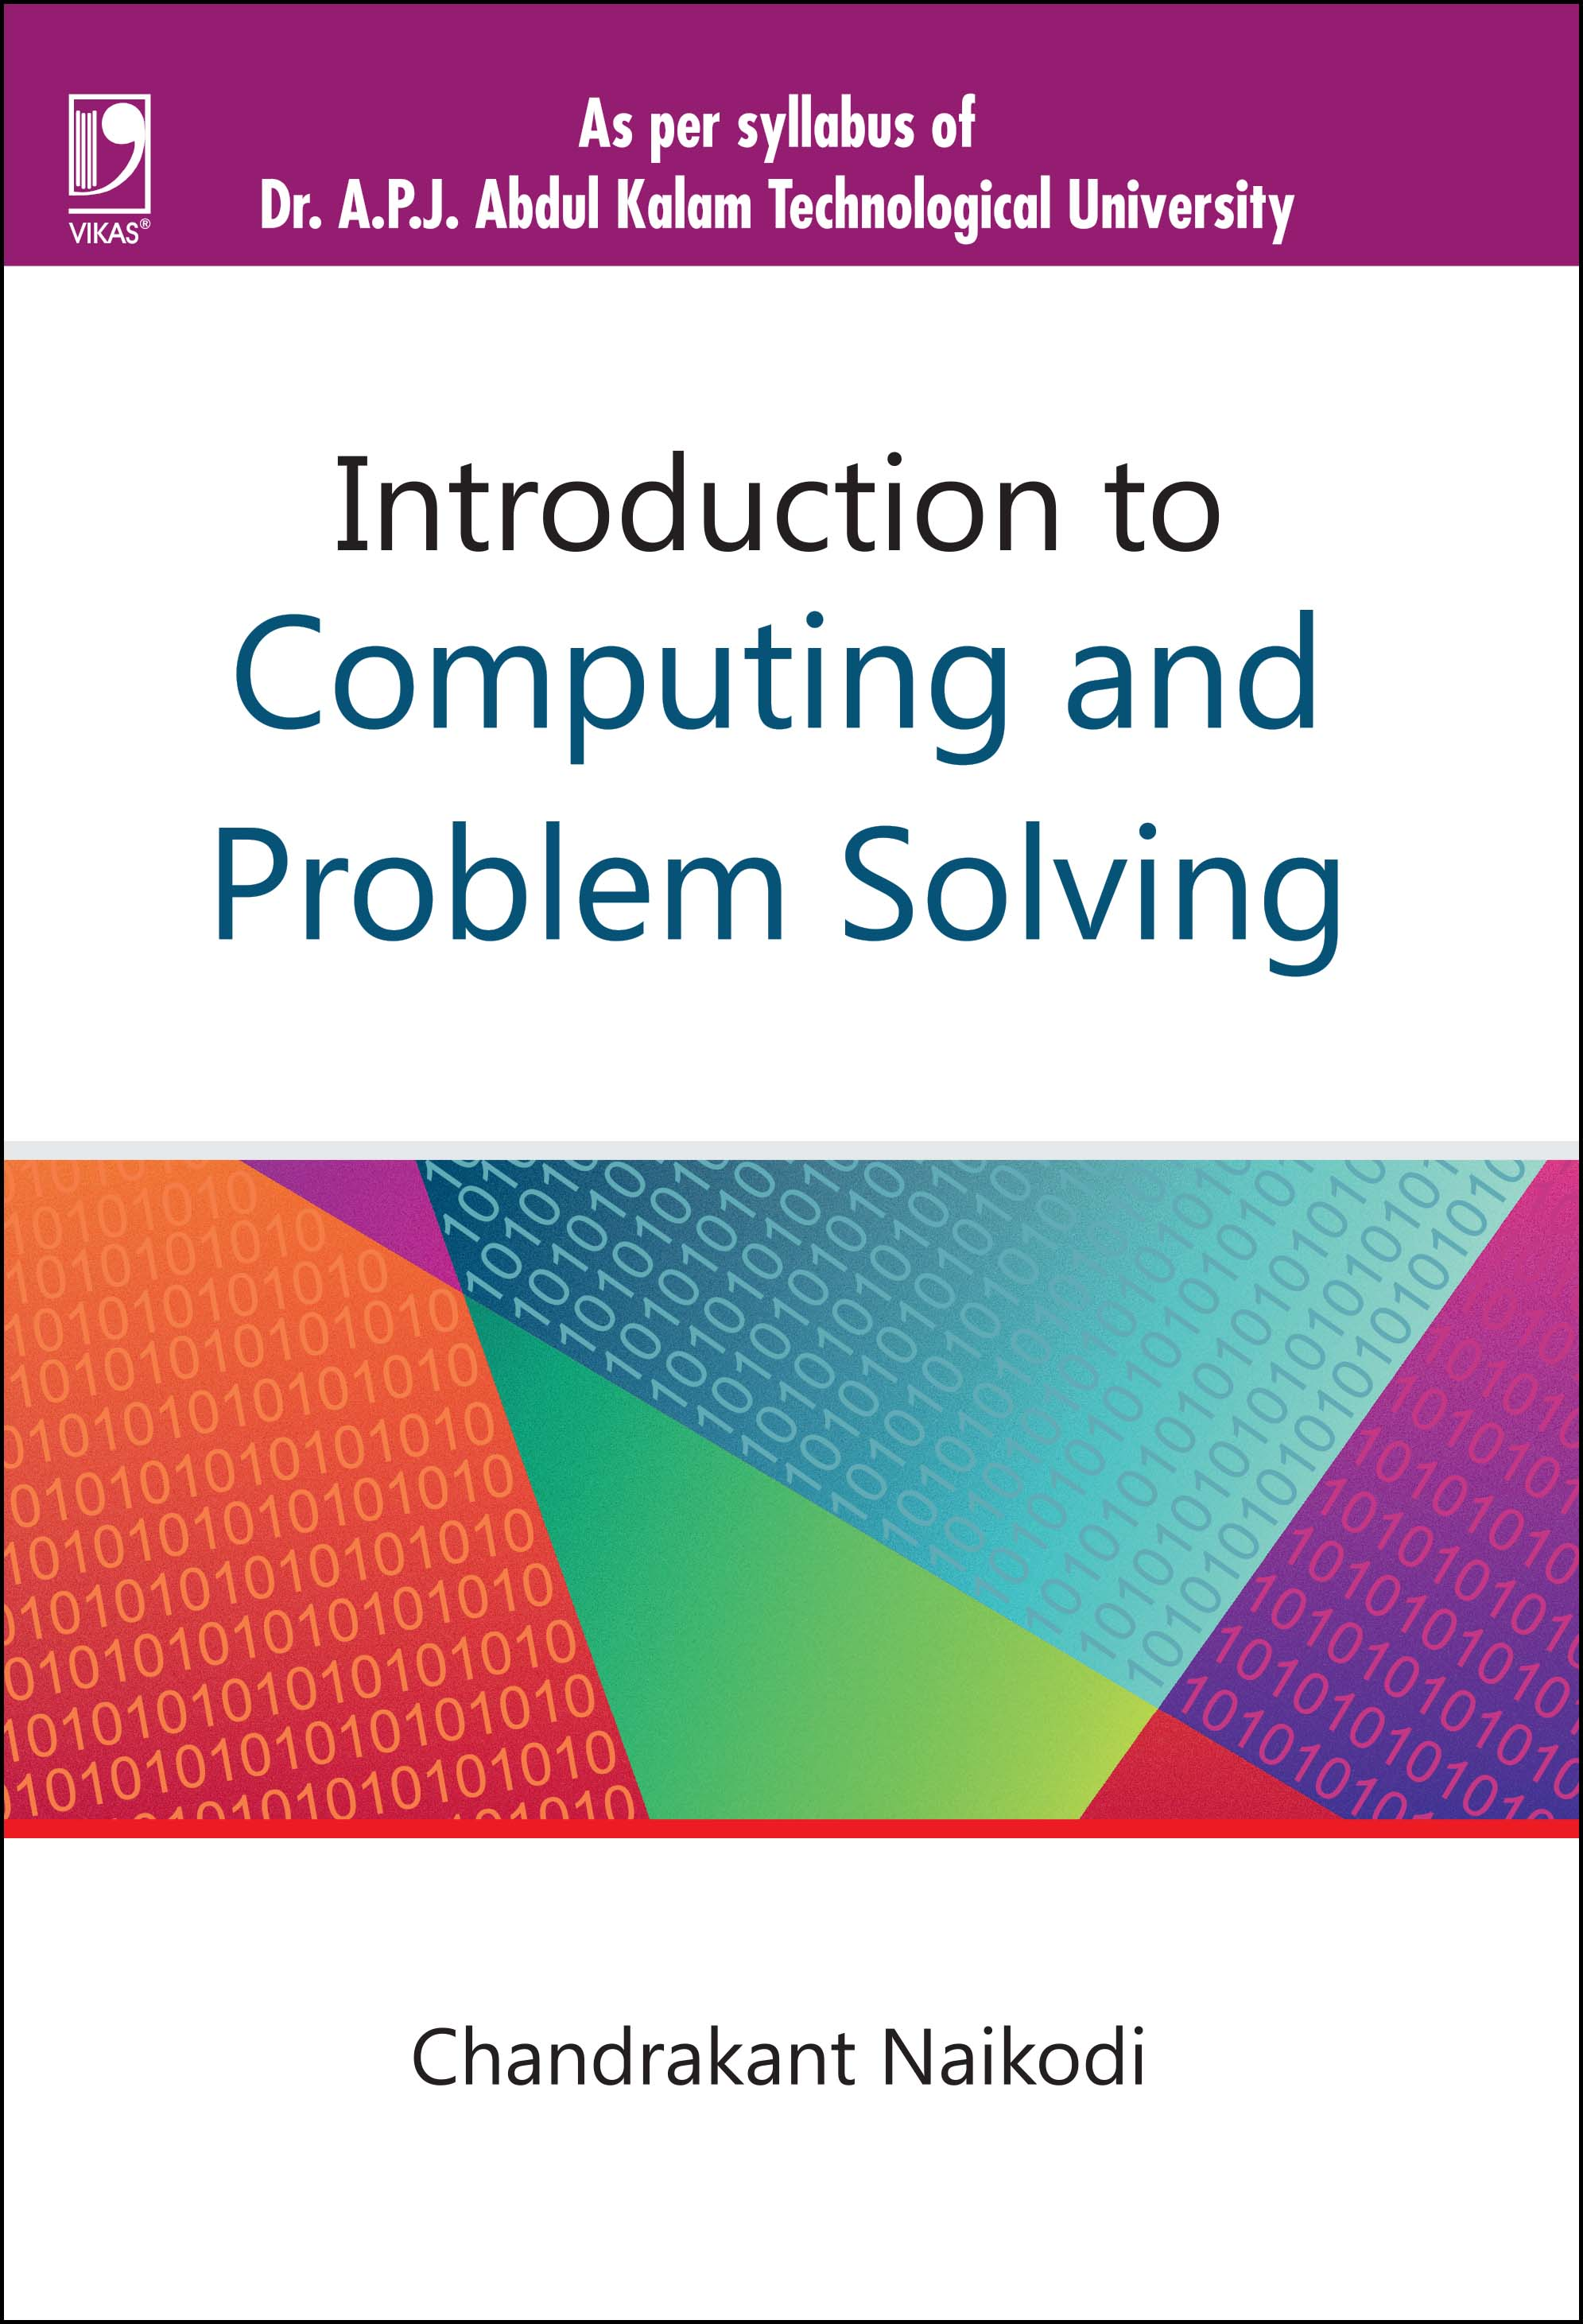 INTRODUCTION TO COMPUTING & PROBLEM SOLVING: (FOR KERALA TECHNICAL UNIVERSITY)